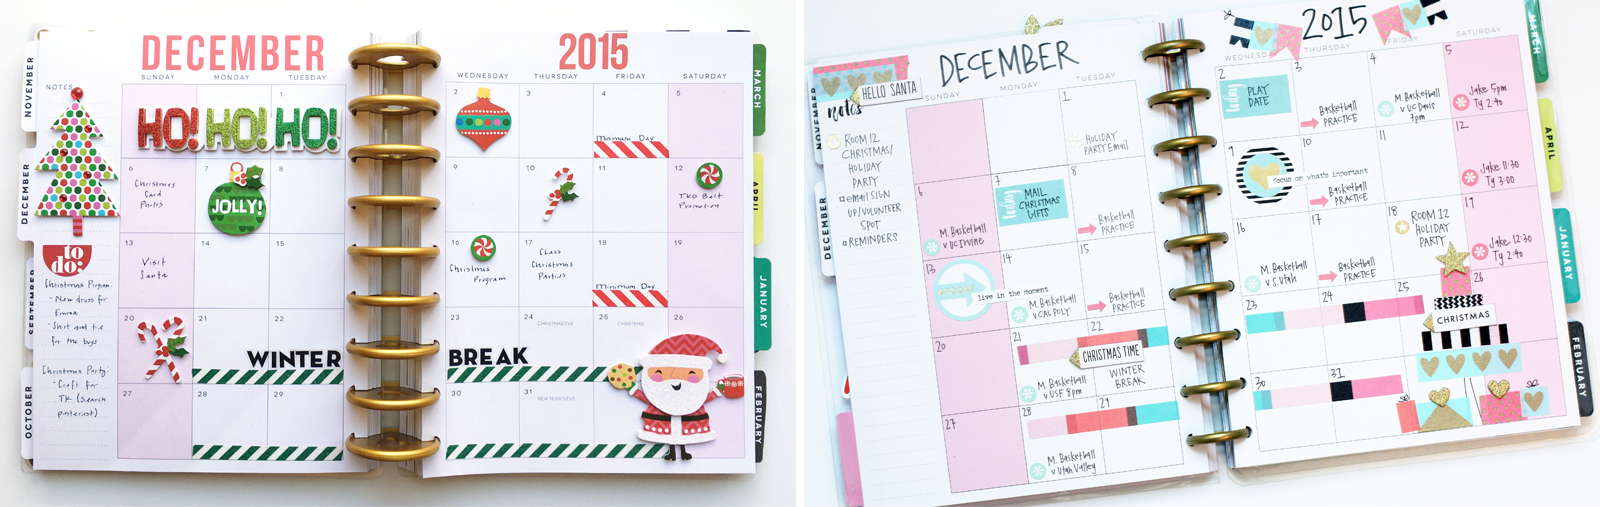 "picture relating to Happy Planner Monthly Layout Printable referred to as The Pleased Plannerâ""¢ 2 December Regular monthly Types me my"